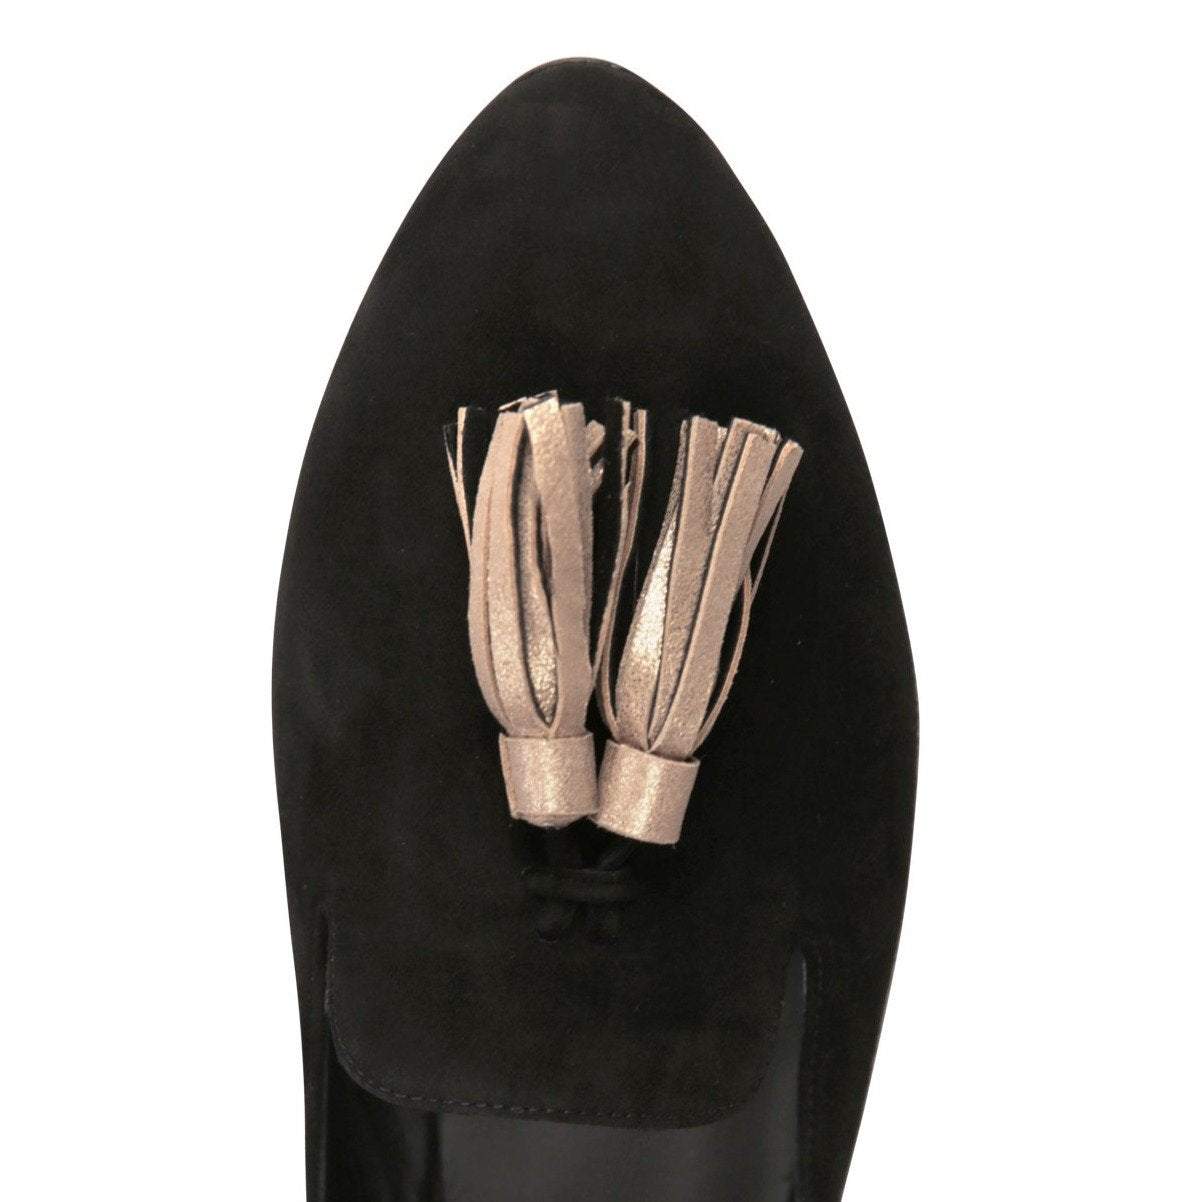 ISEO - Velukid Nero + Burma Sabbia Rosata Tassel, VIAJIYU - Women's Hand Made Sustainable Luxury Shoes. Made in Italy. Made to Order.